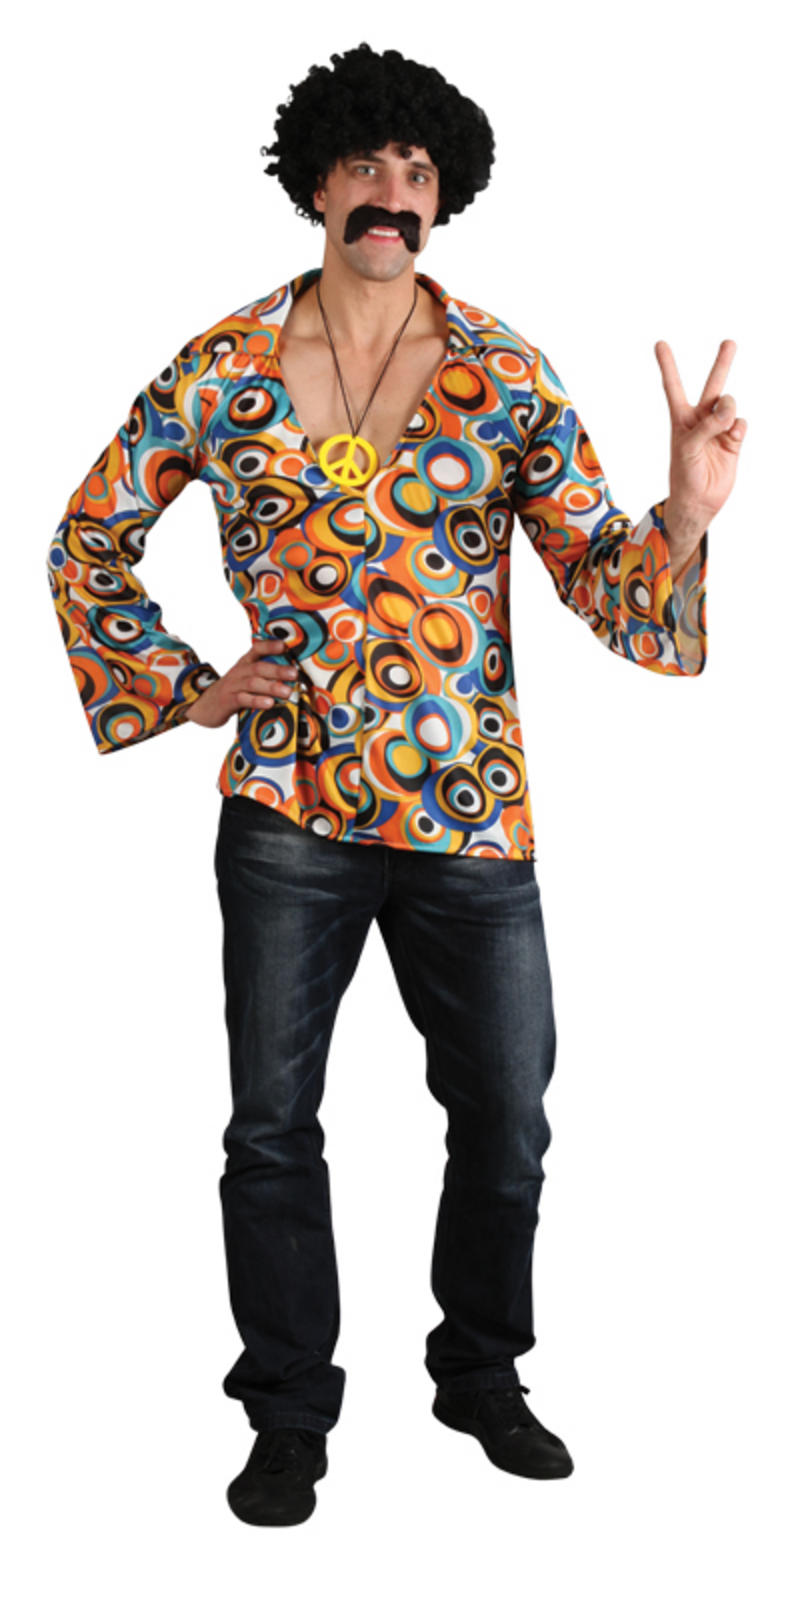 Mensu0026#39; Groovy Flower Power Hippie Shirt Fancy Dress Up Party Festival Costume